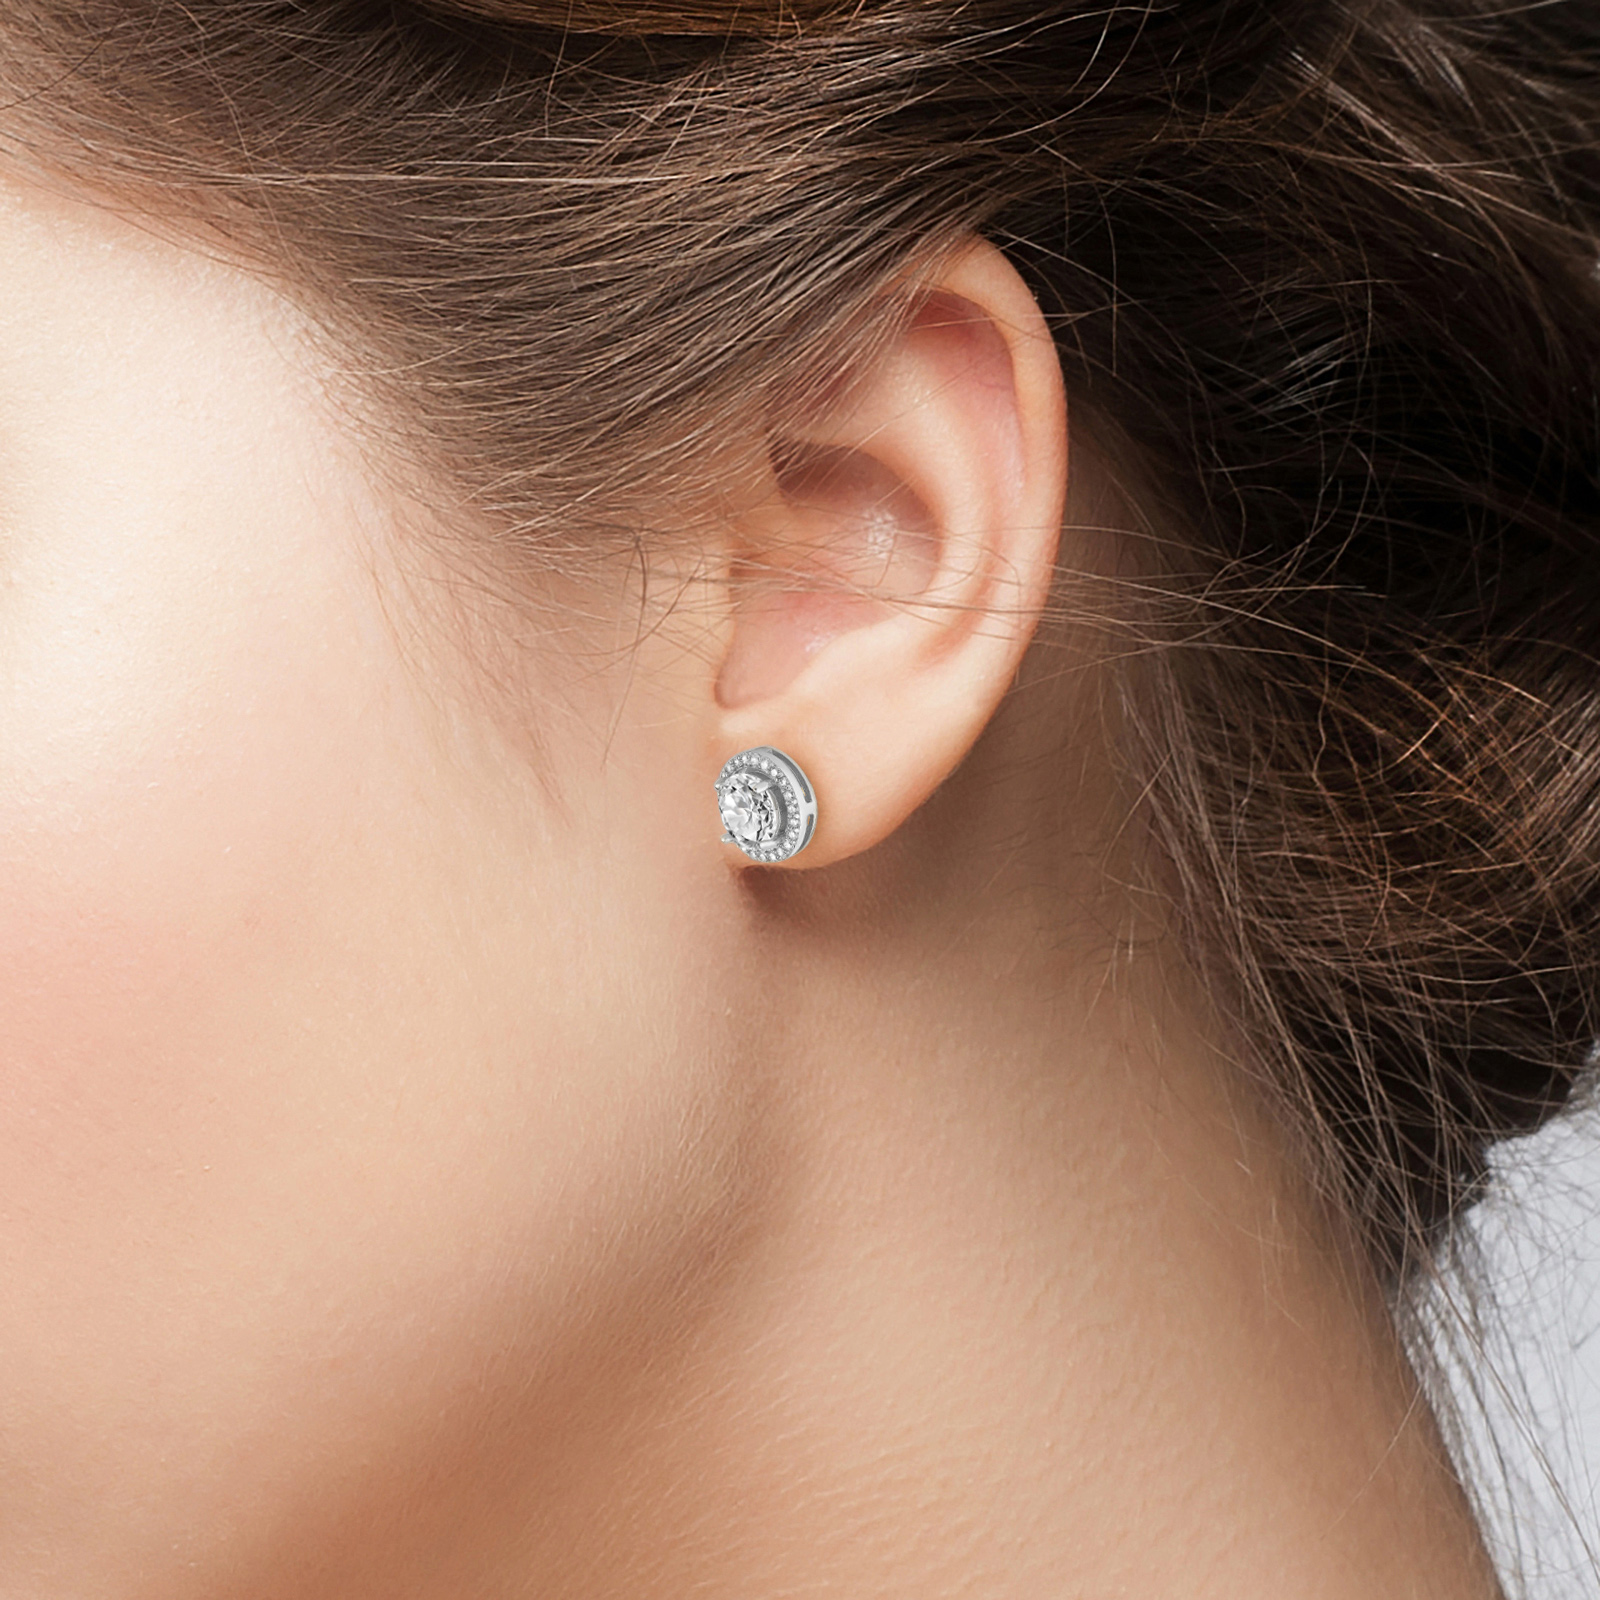 Details about  /Plated Sterling Silver Cubic Zirconia Halo Stud Earrings